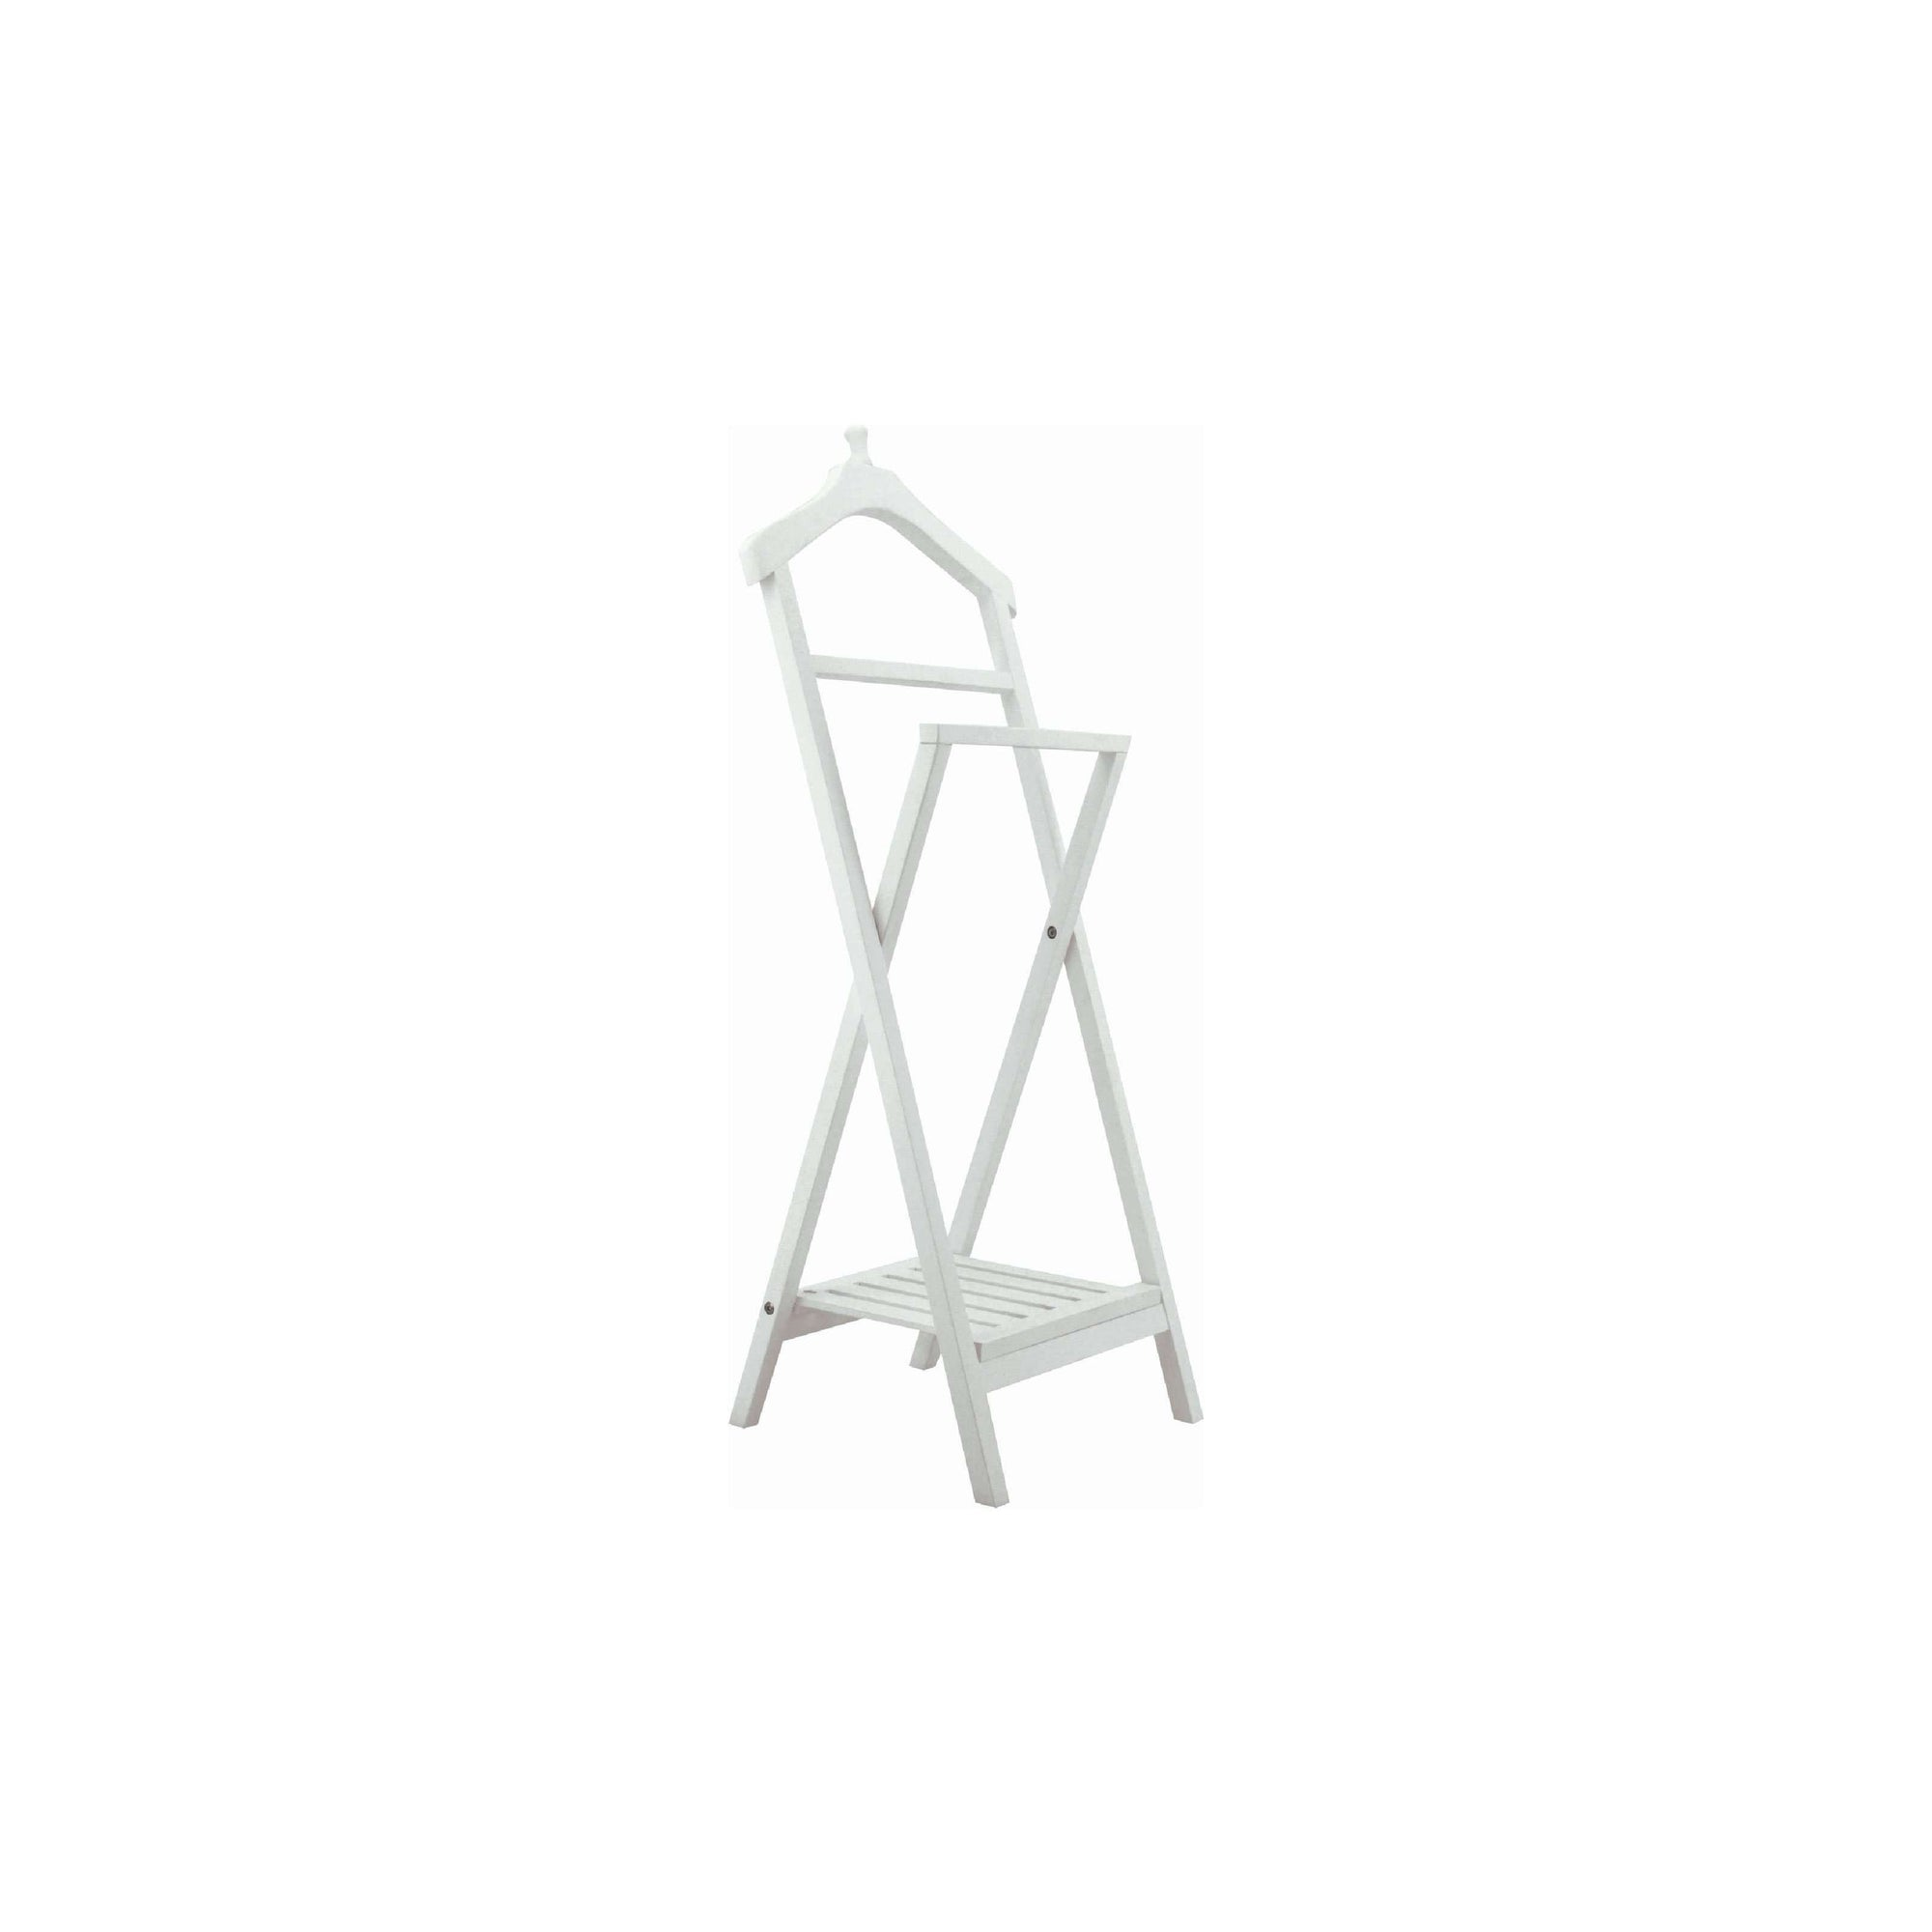 XAVIER 3 x Cloth Hanger in White Lacquered Colour